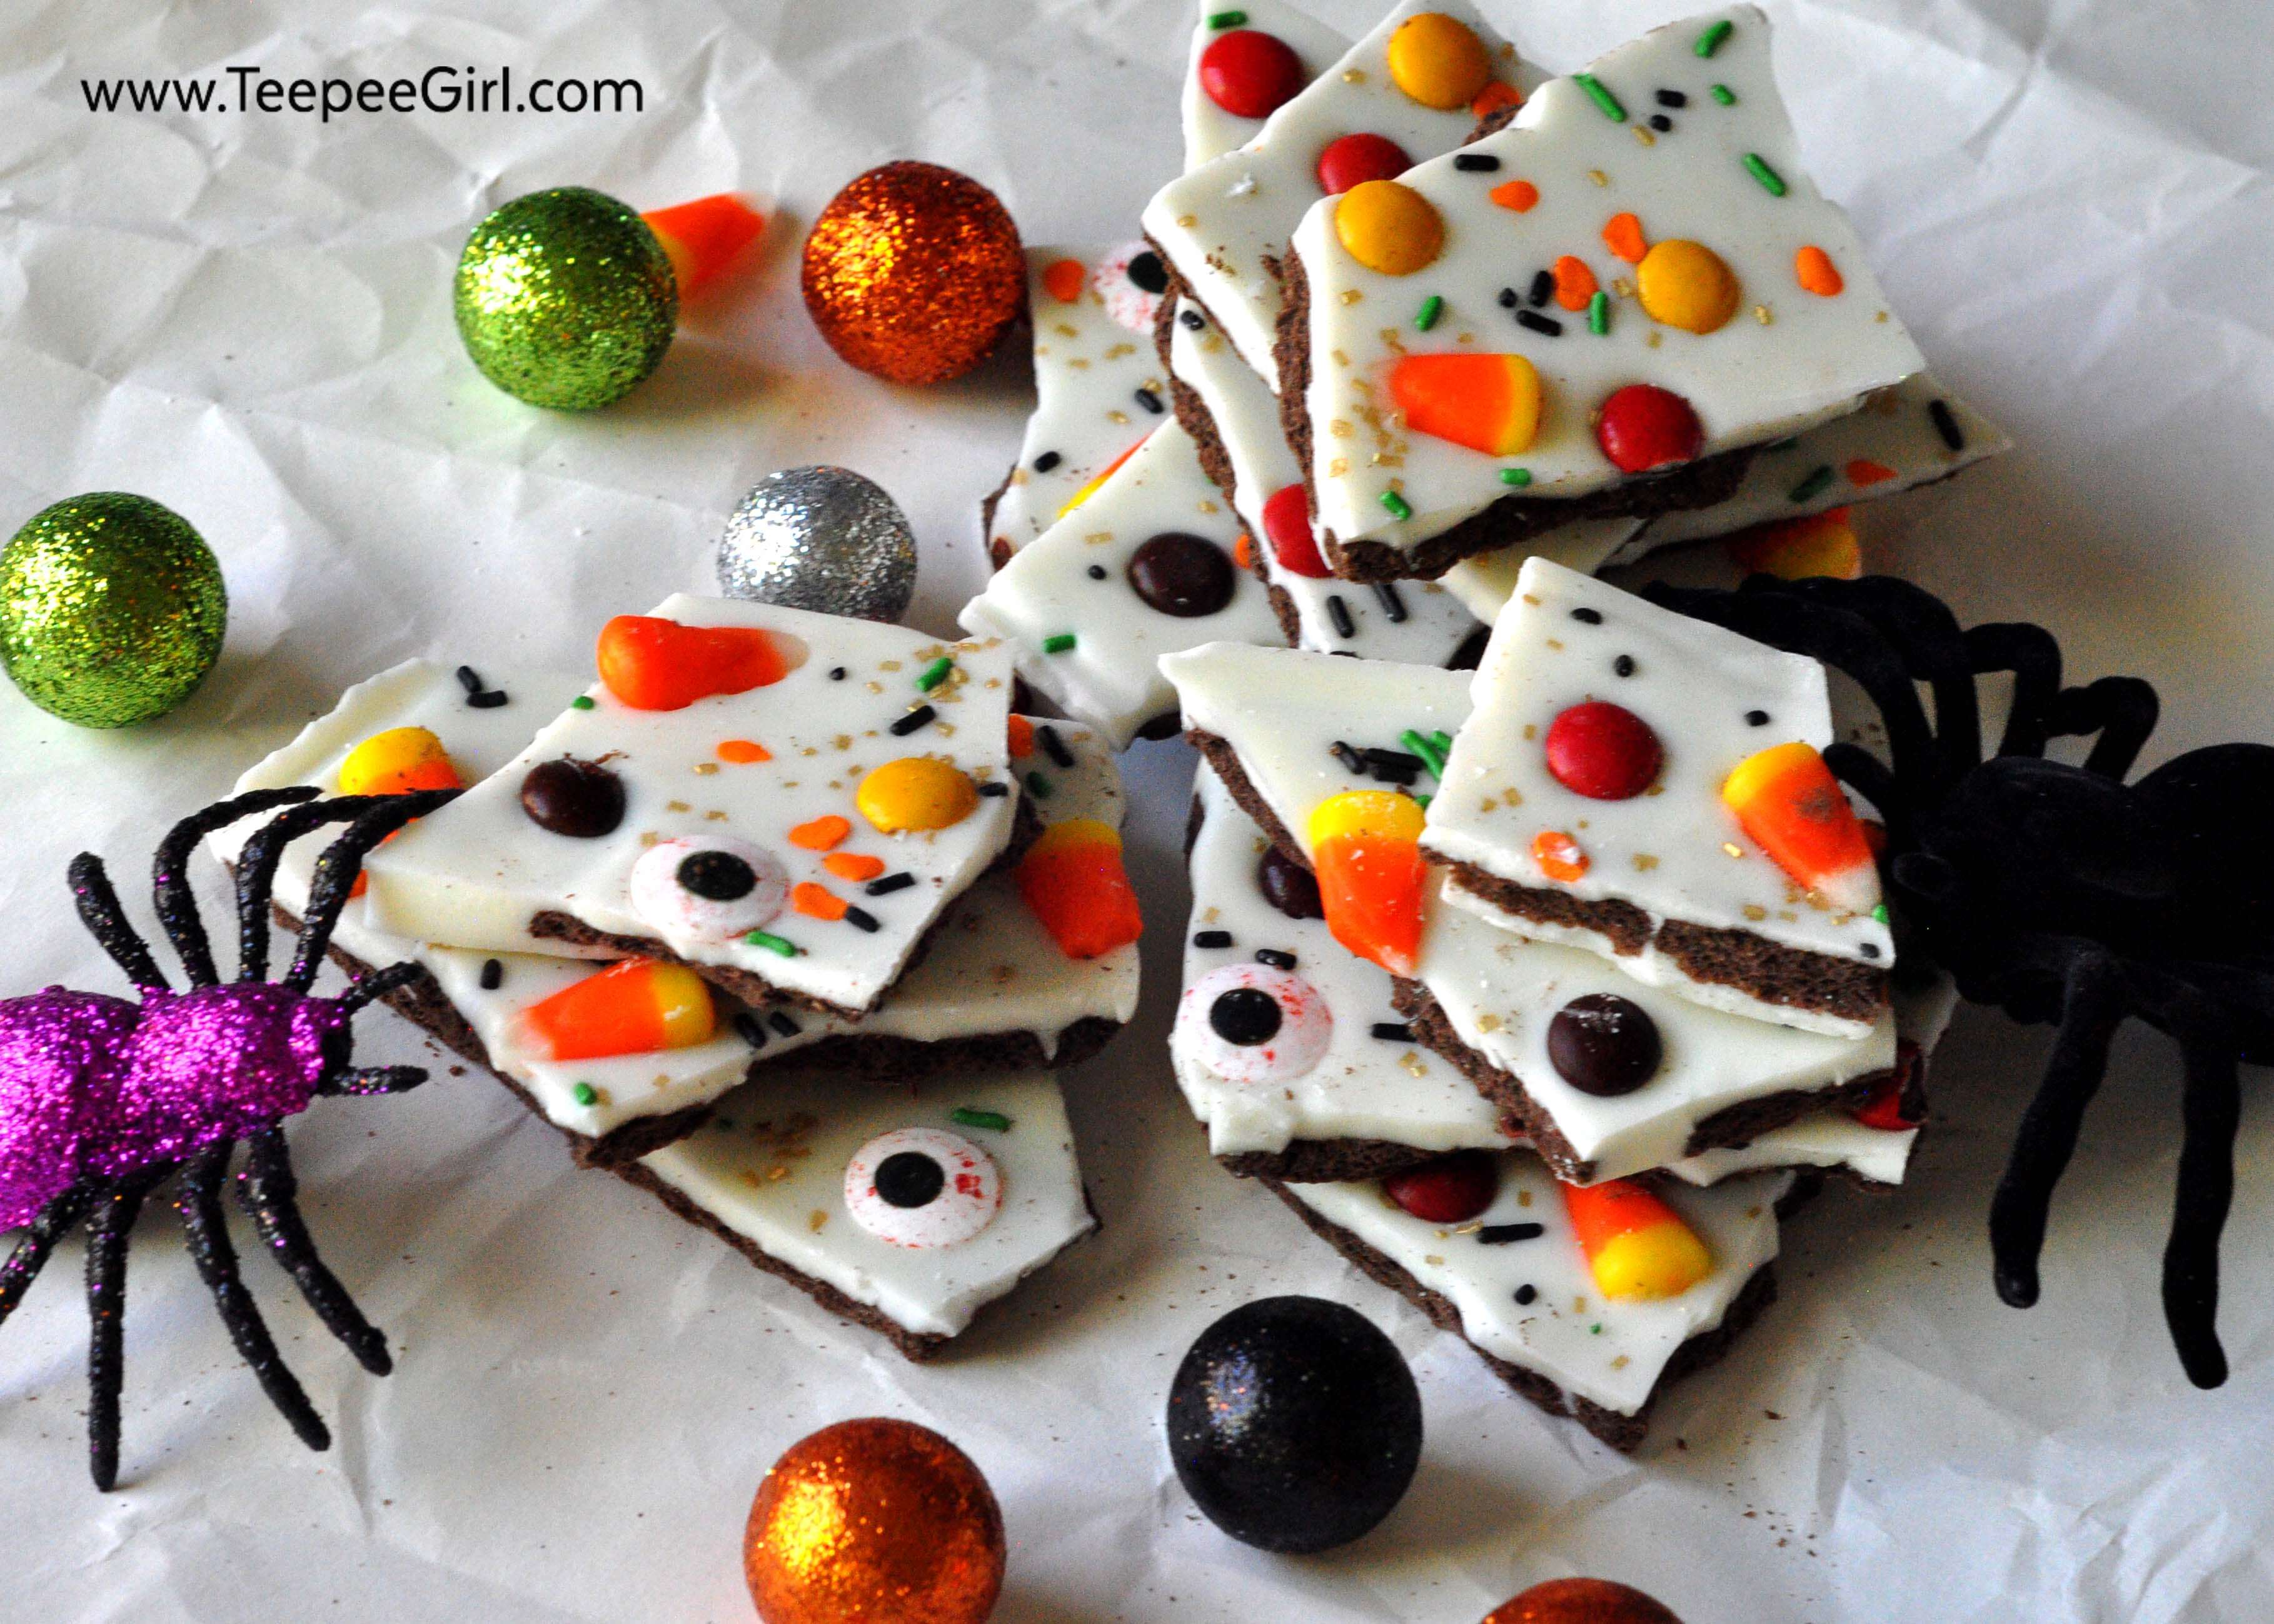 Easy Halloween Candy Bark. This yummy and super EASY Halloween treat will be a crowd favorite for both kids and adults this Halloween! It's only takes a few minutes to make and you can use any candy you already have to decorate and customize the top. www.TeepeeGirl.com